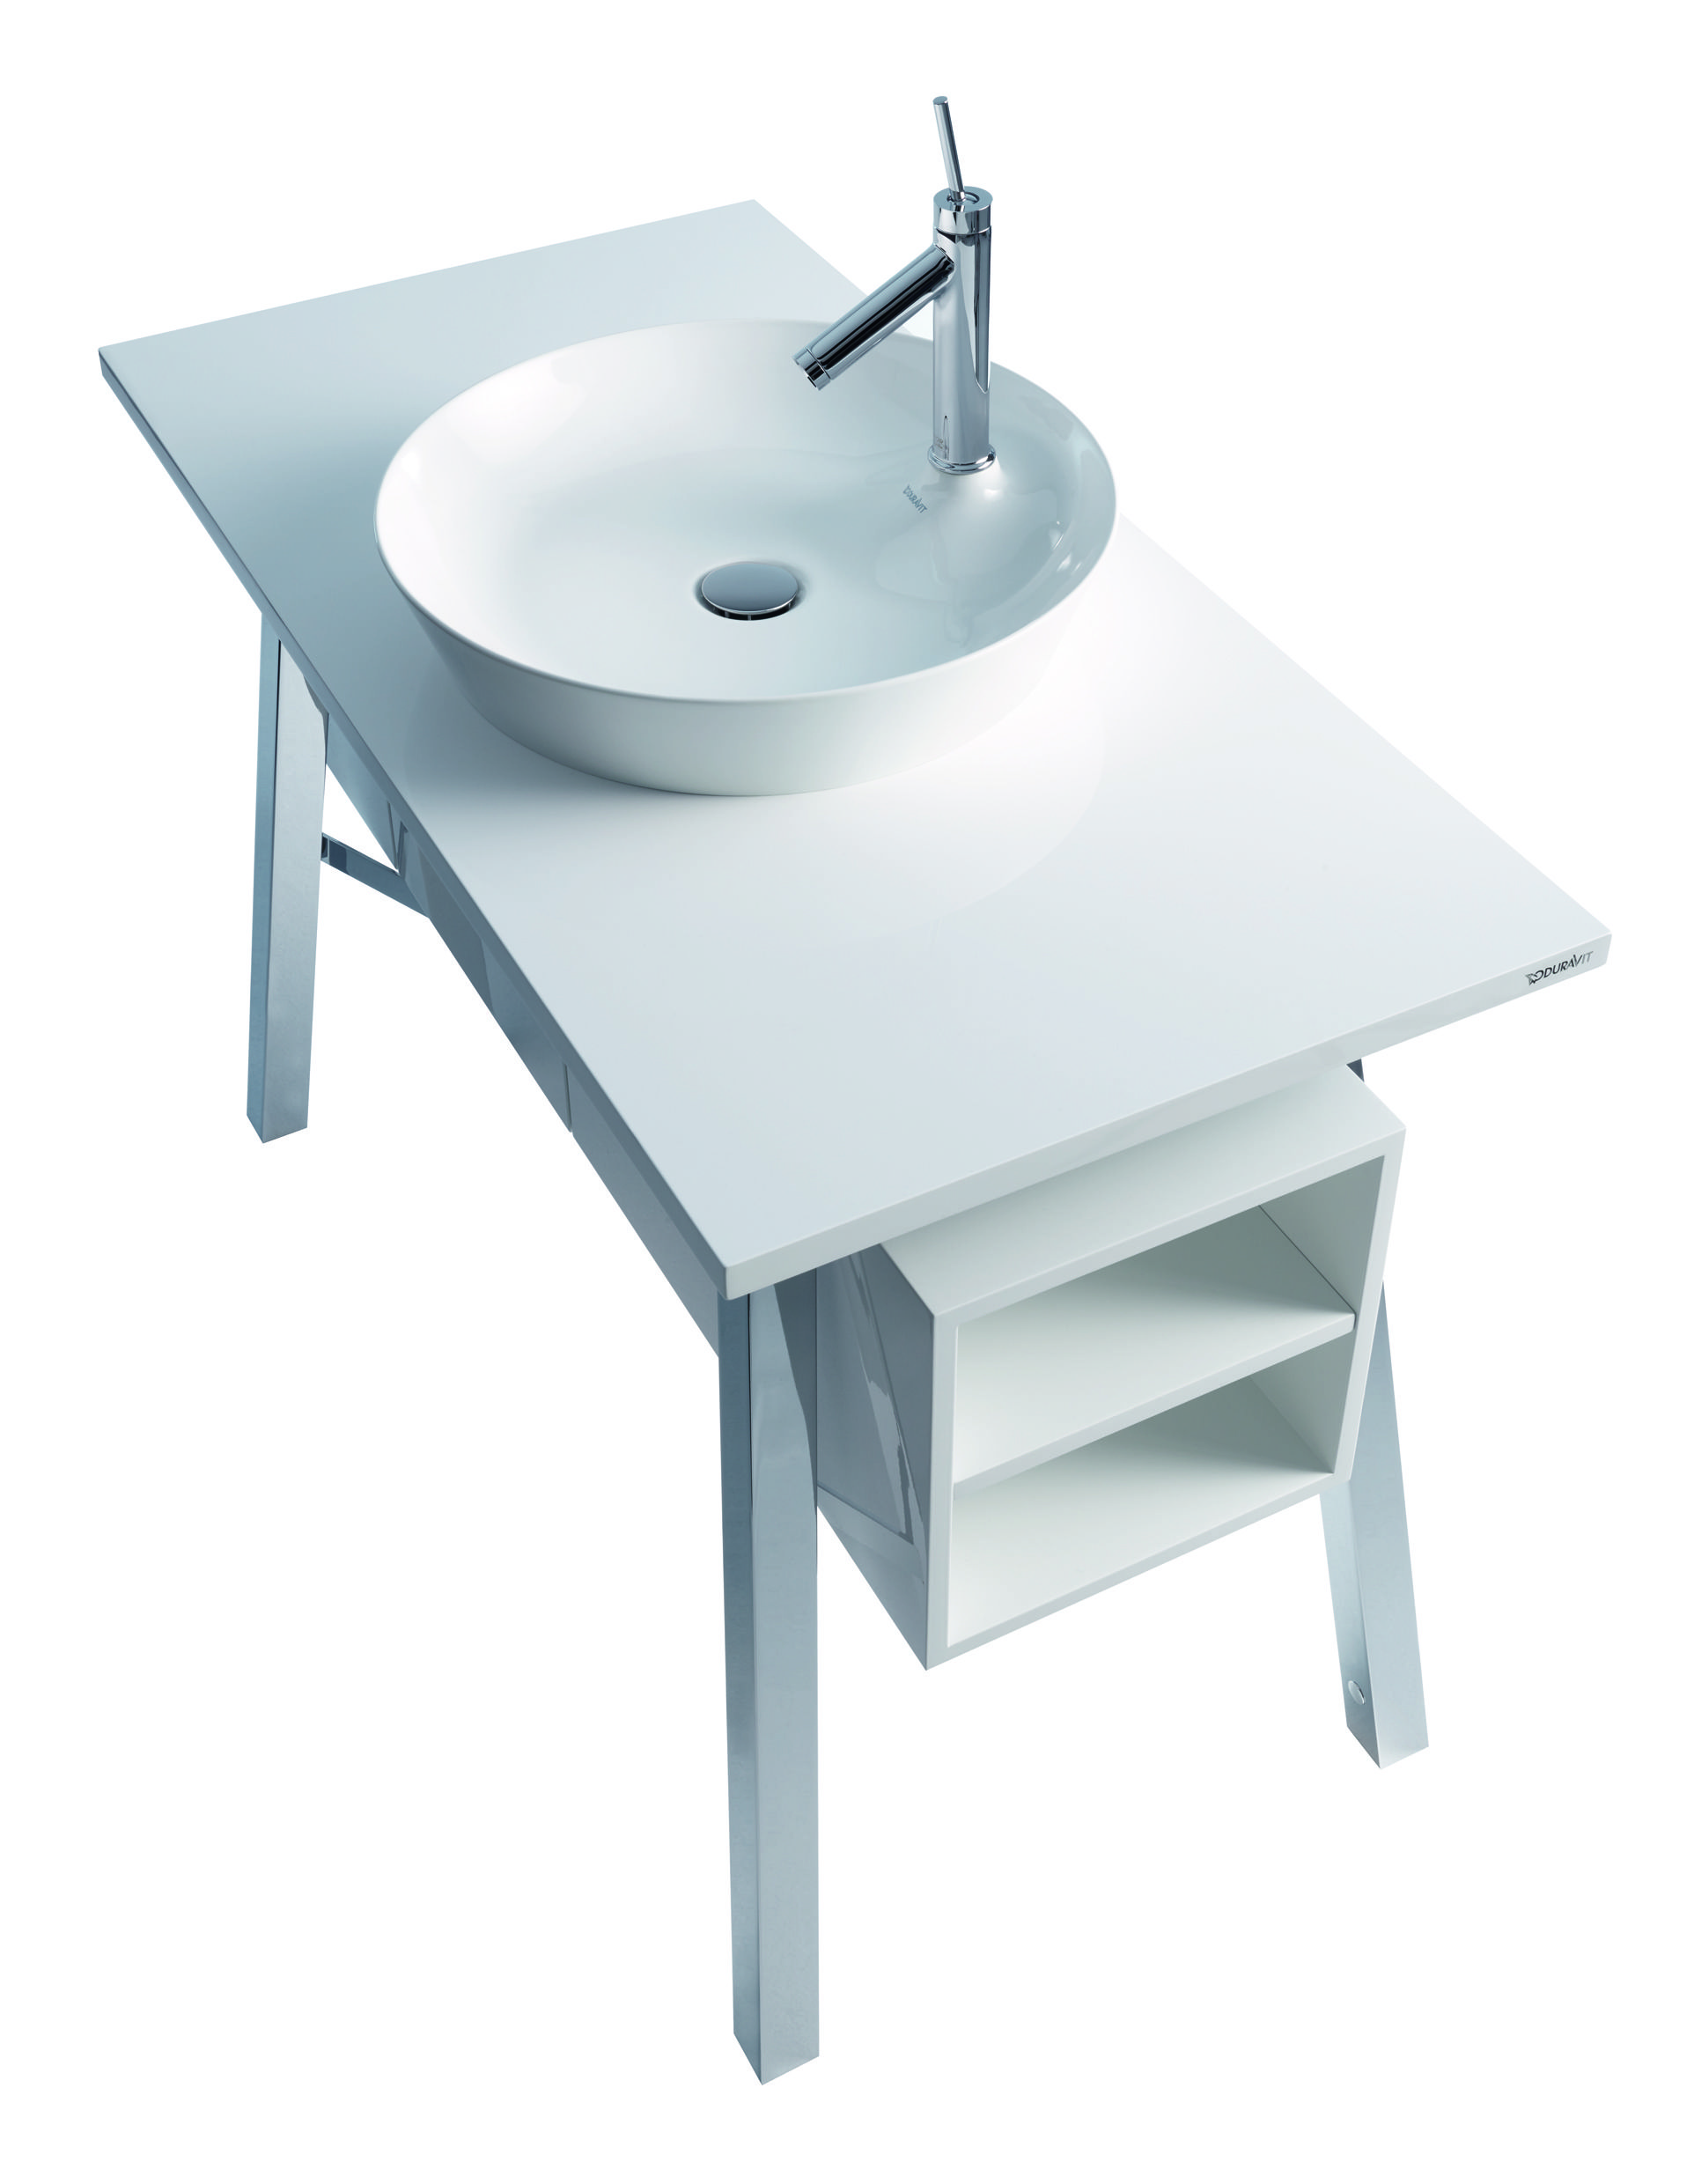 sink basics are pedestal the of in duravit pros and sinks cons again